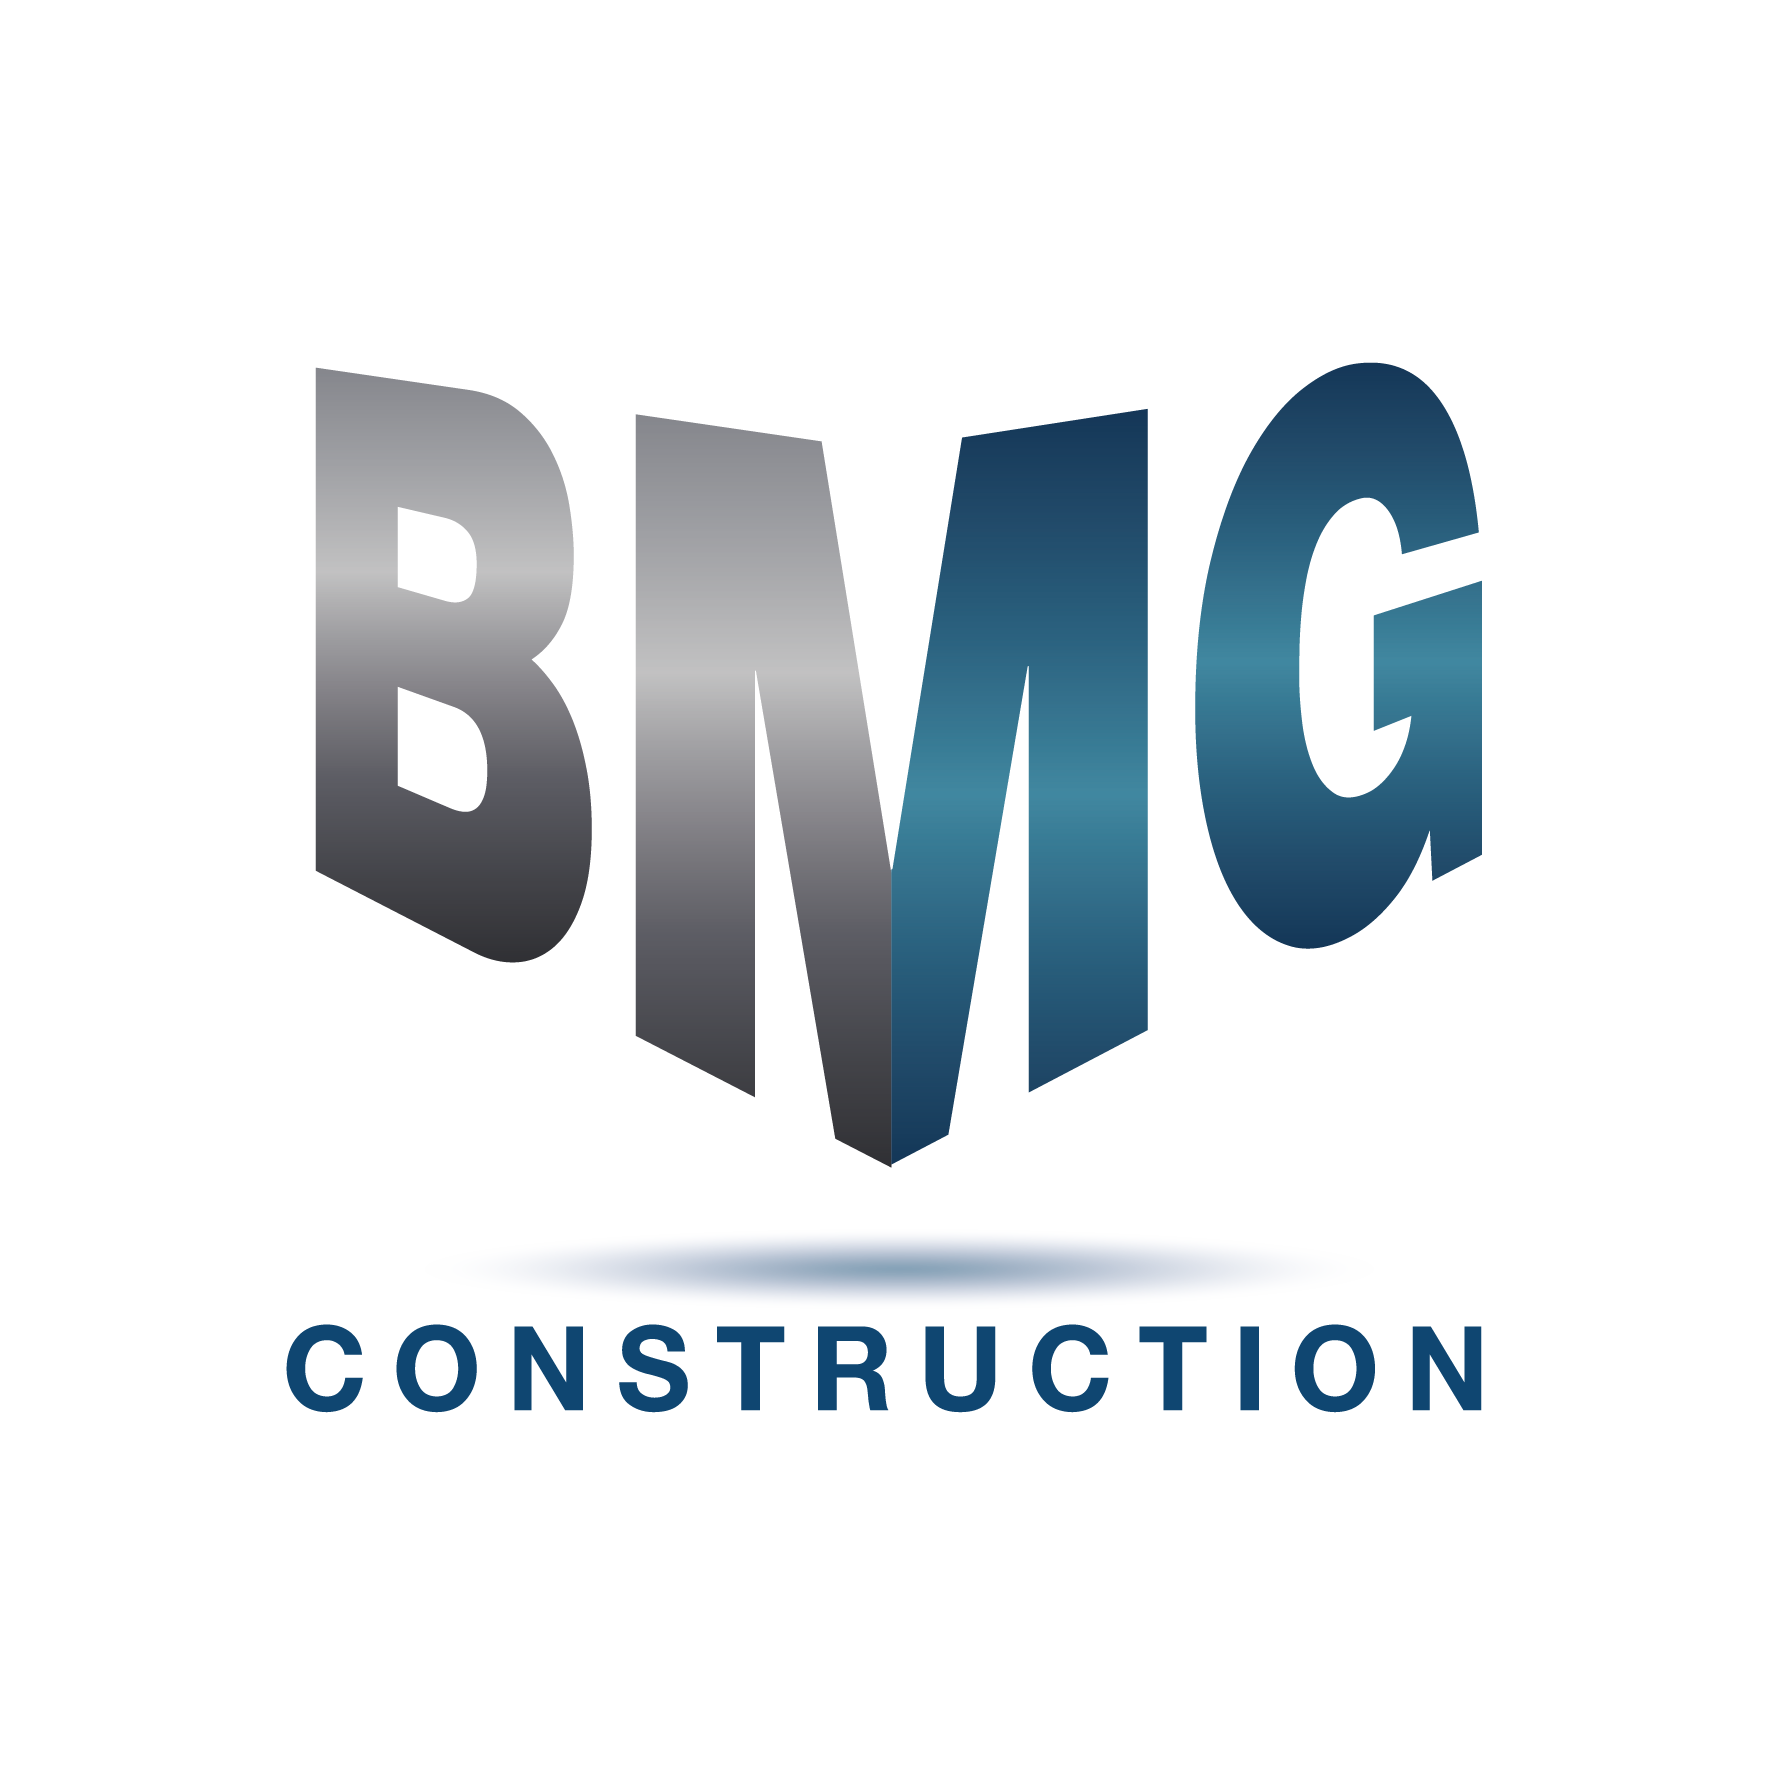 Logo design for BMG.